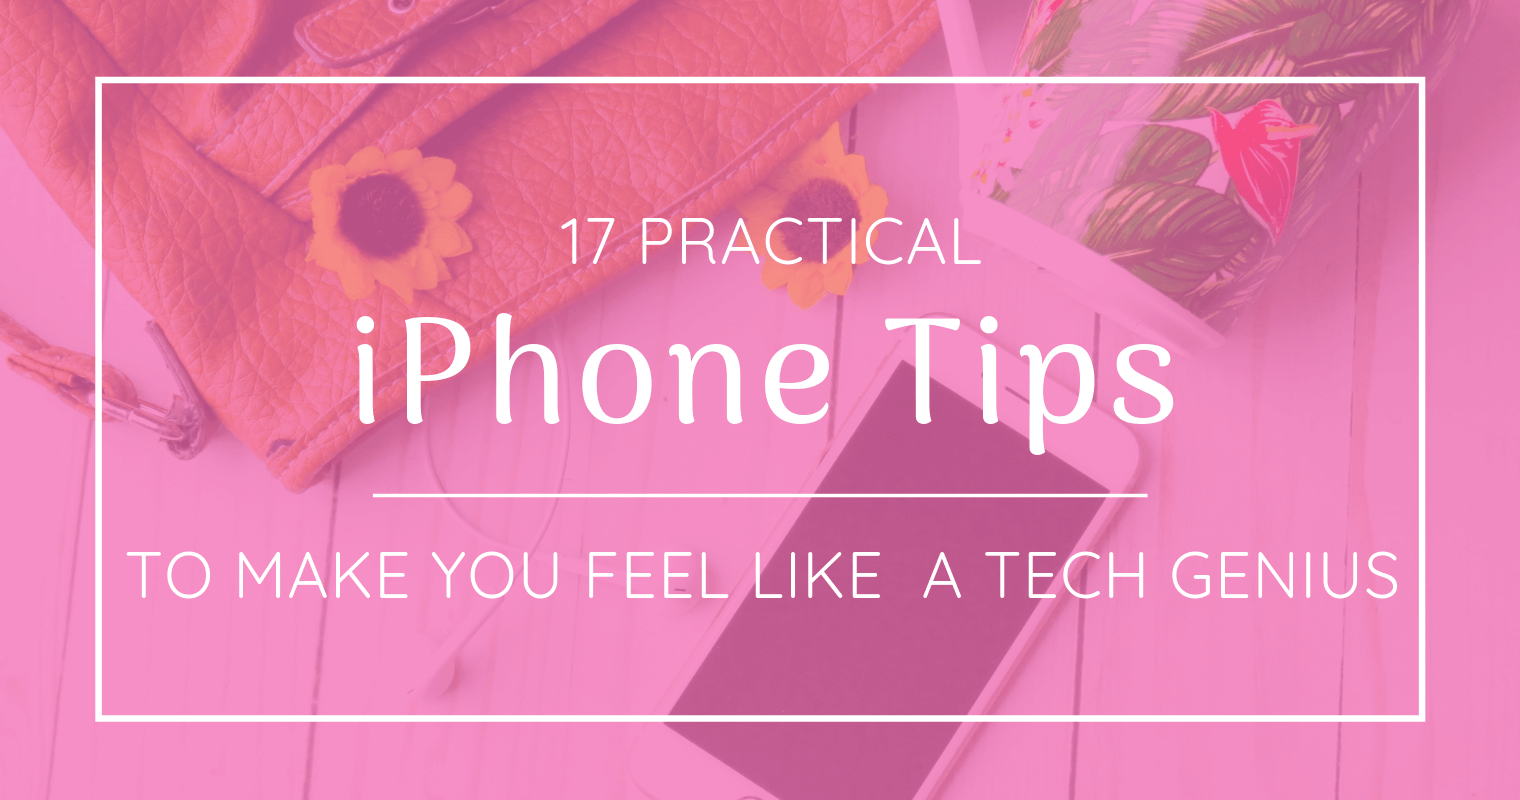 These 16 tips will have you feeling like an old pro with your iPhone in no time.